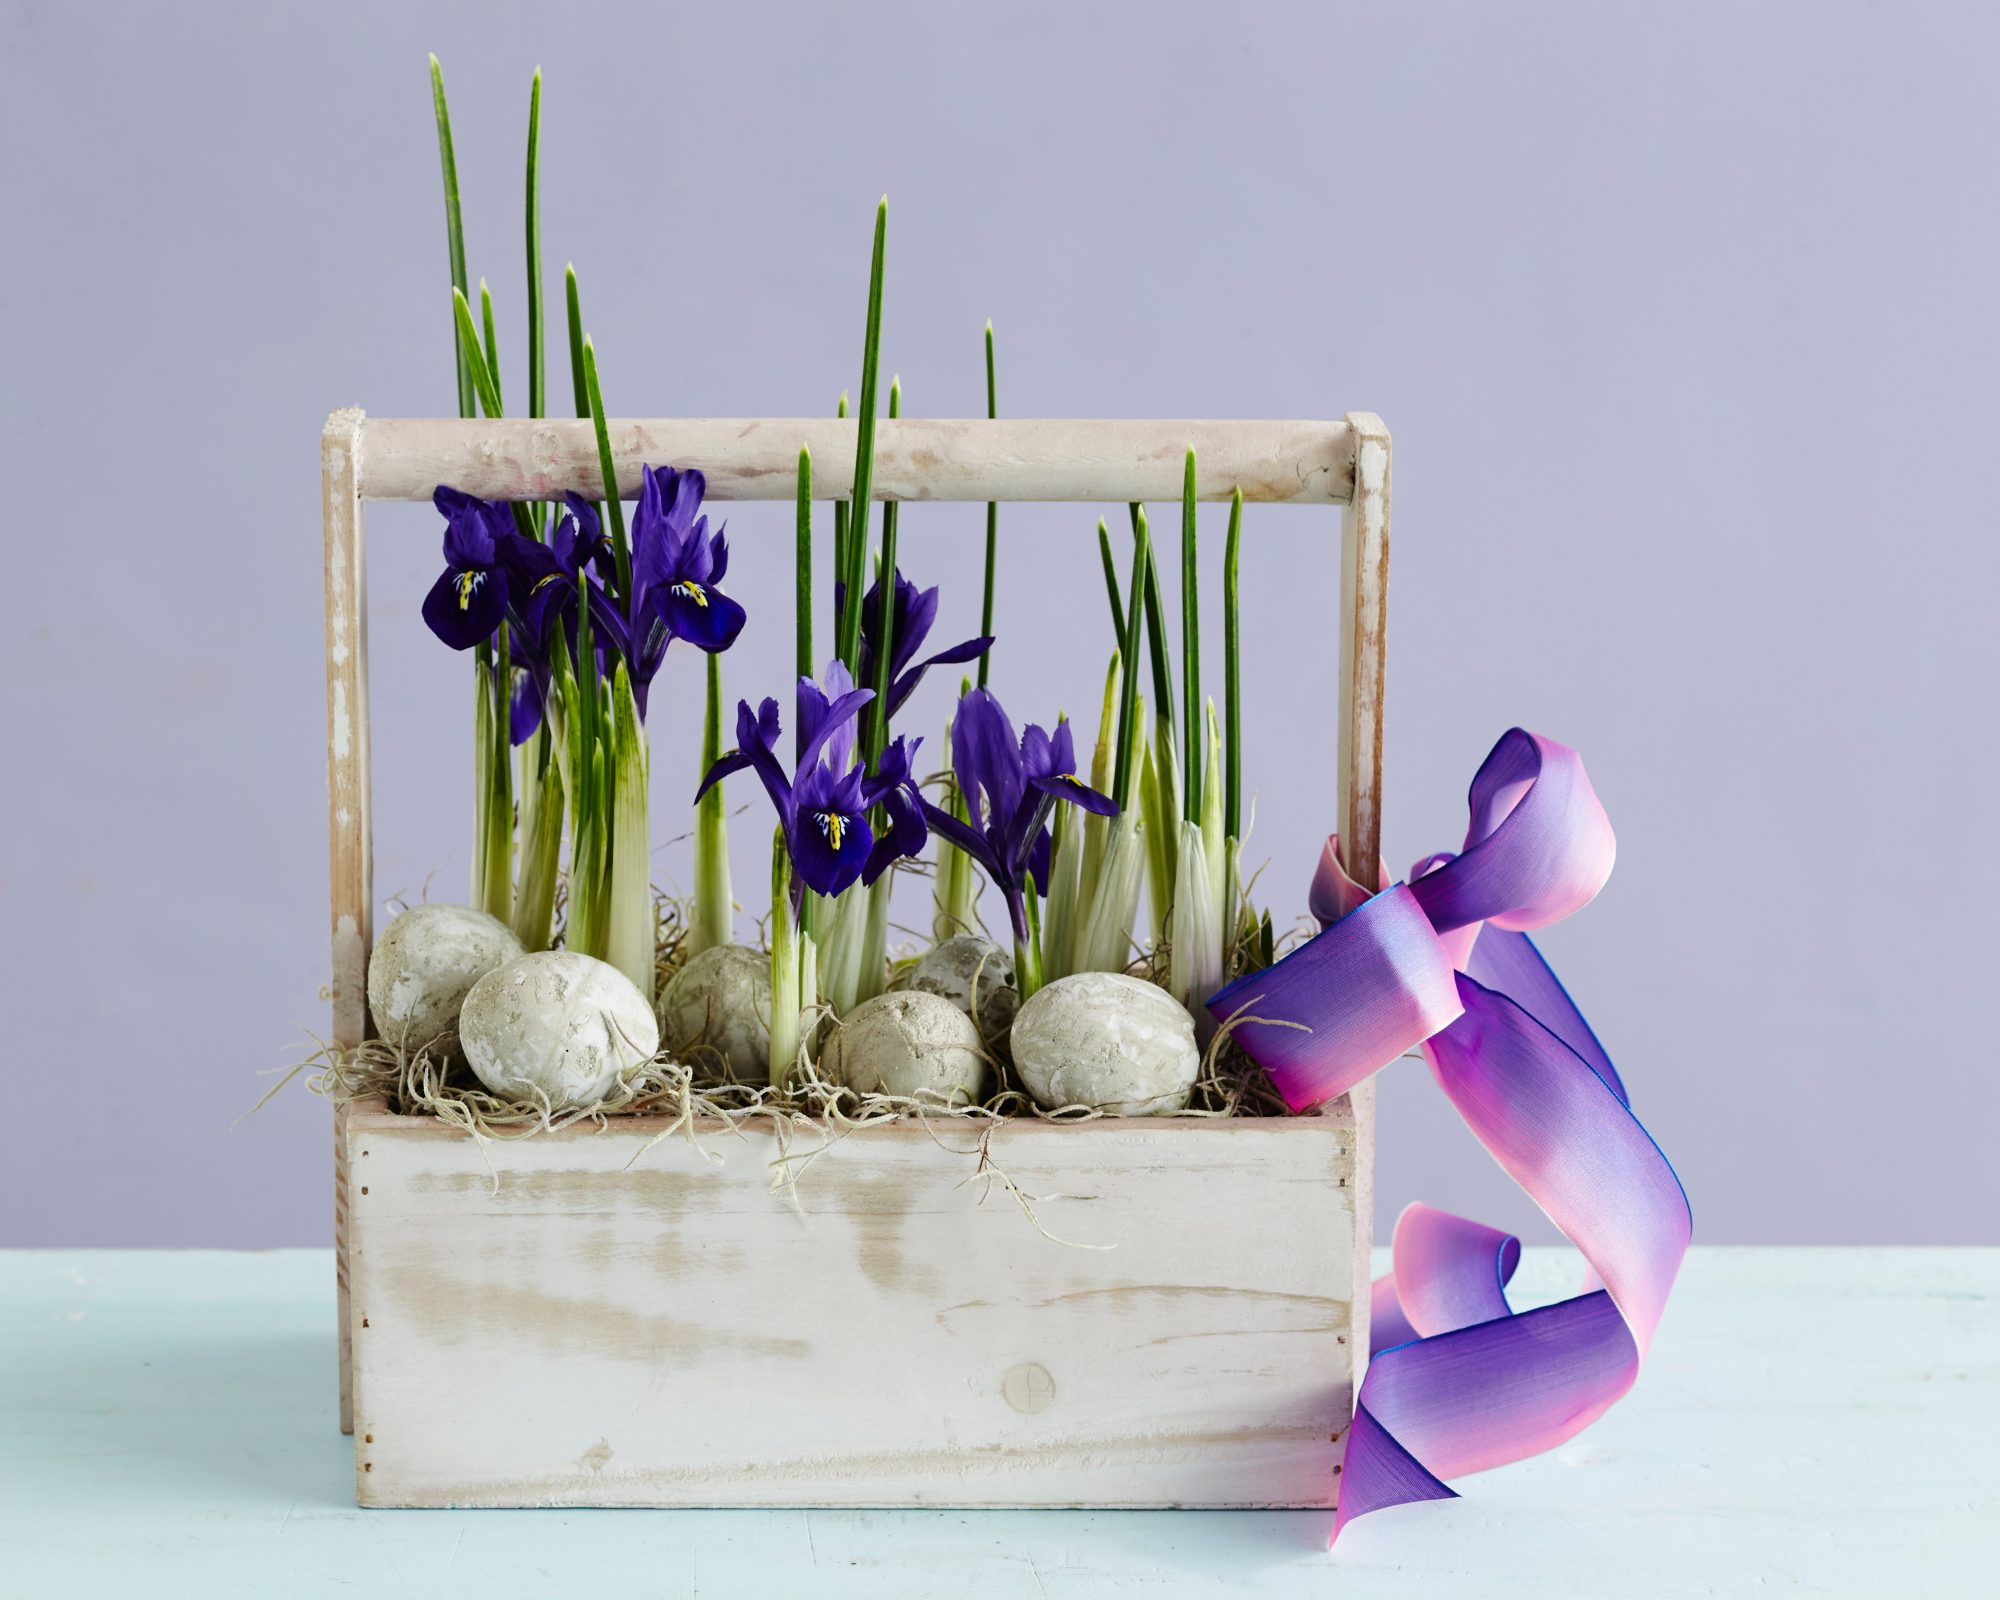 25 Easy Spring Decorating Ideas We Rsquo Re Diying This Weekend Southern Living